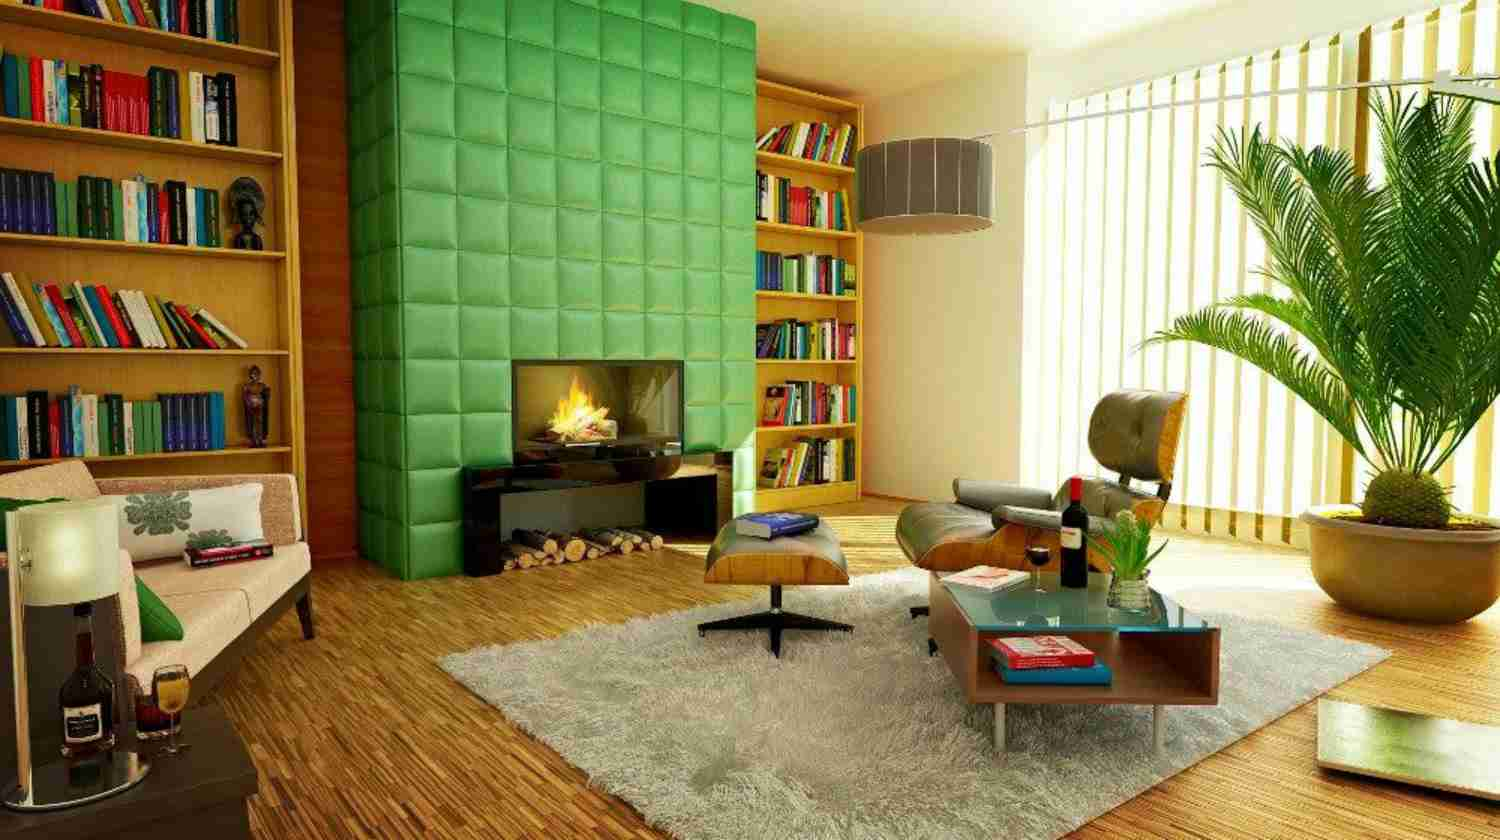 Easy Home Improvement Projects Small Budget, Big Impact Upgrades